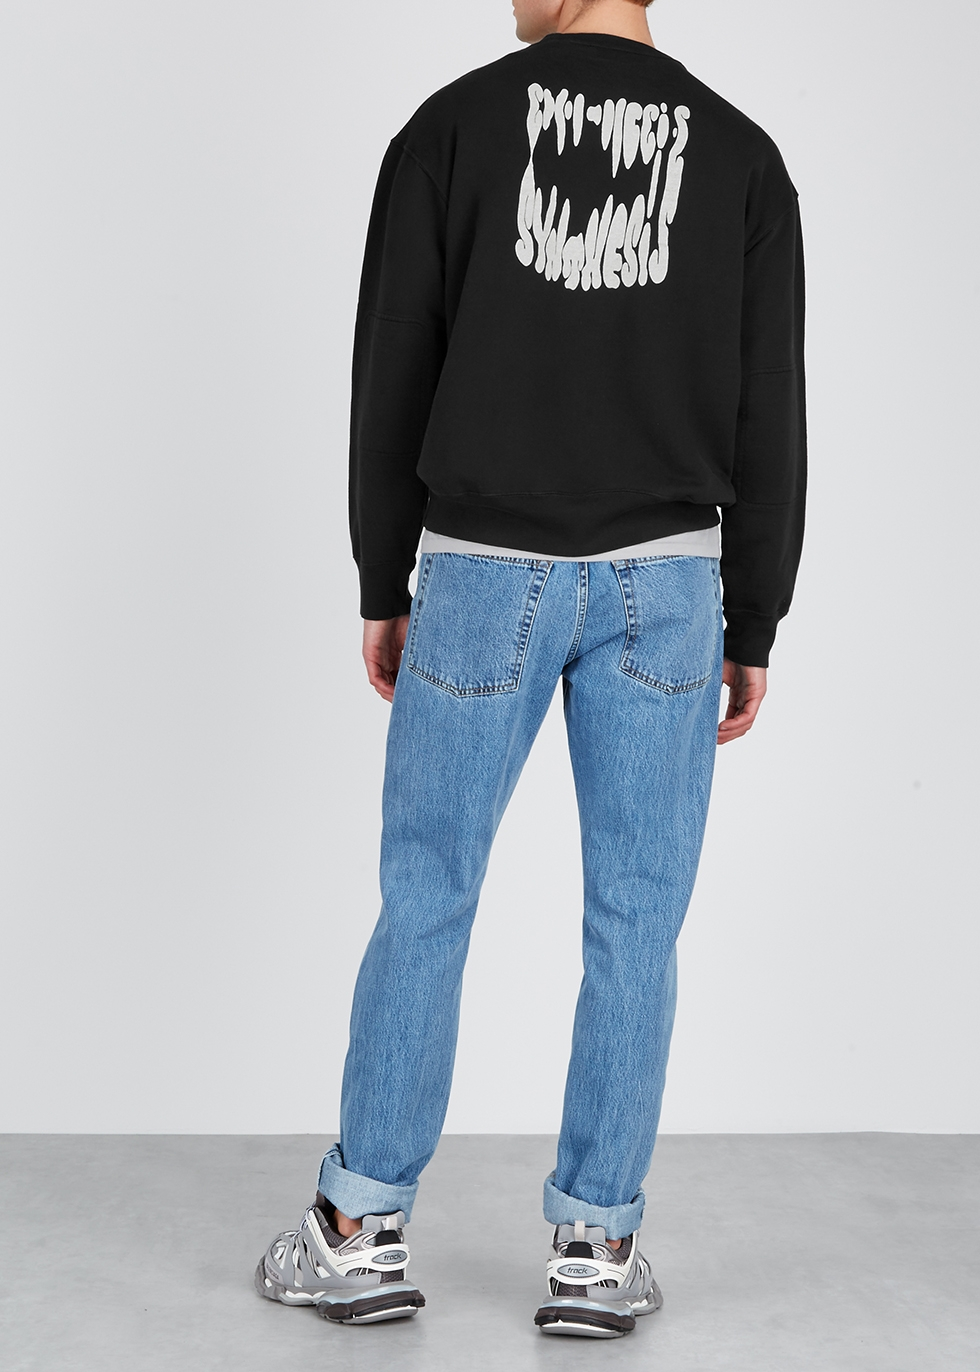 Synthesis black cotton sweatshirt - Our Legacy